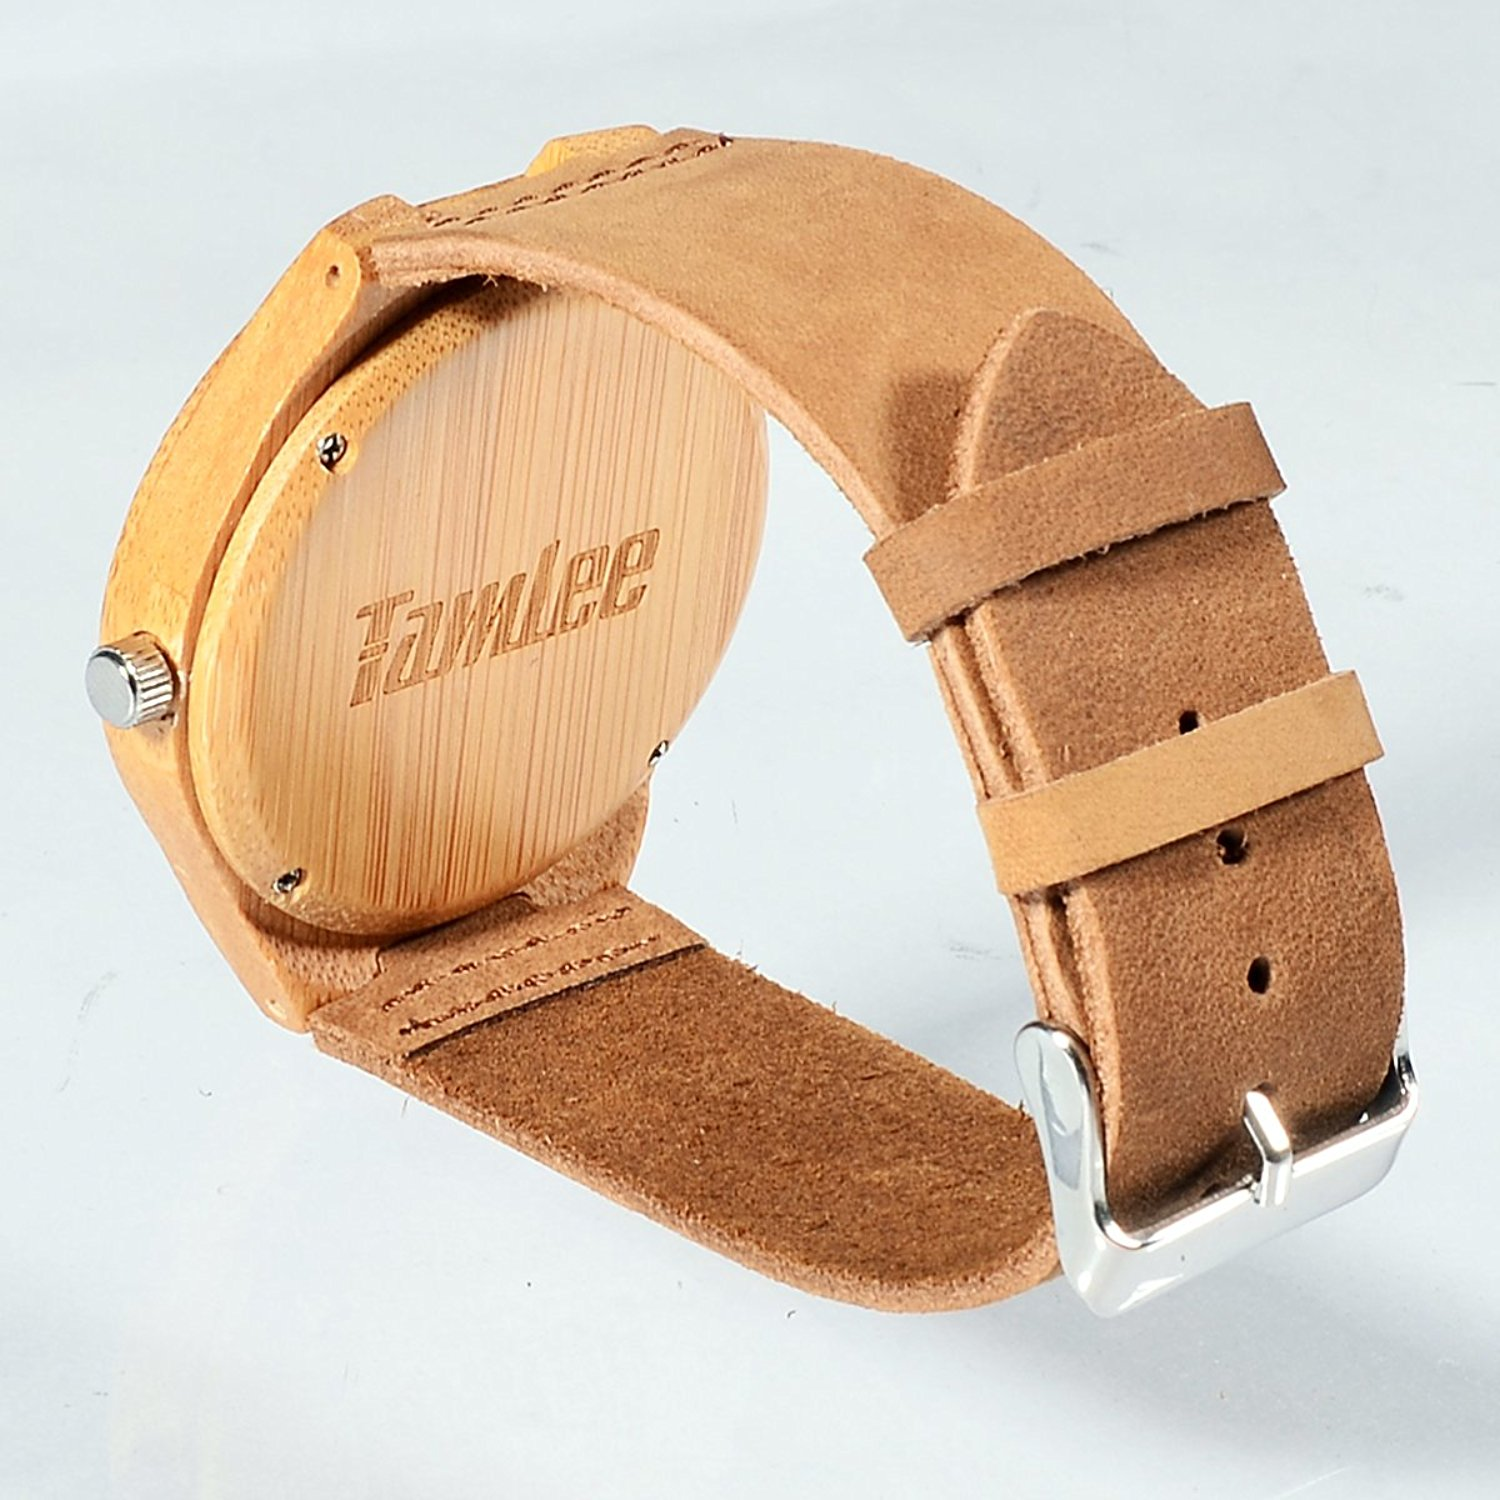 products pair couples leather hut wood rouge a make watches red tree please wooden watch bamboo